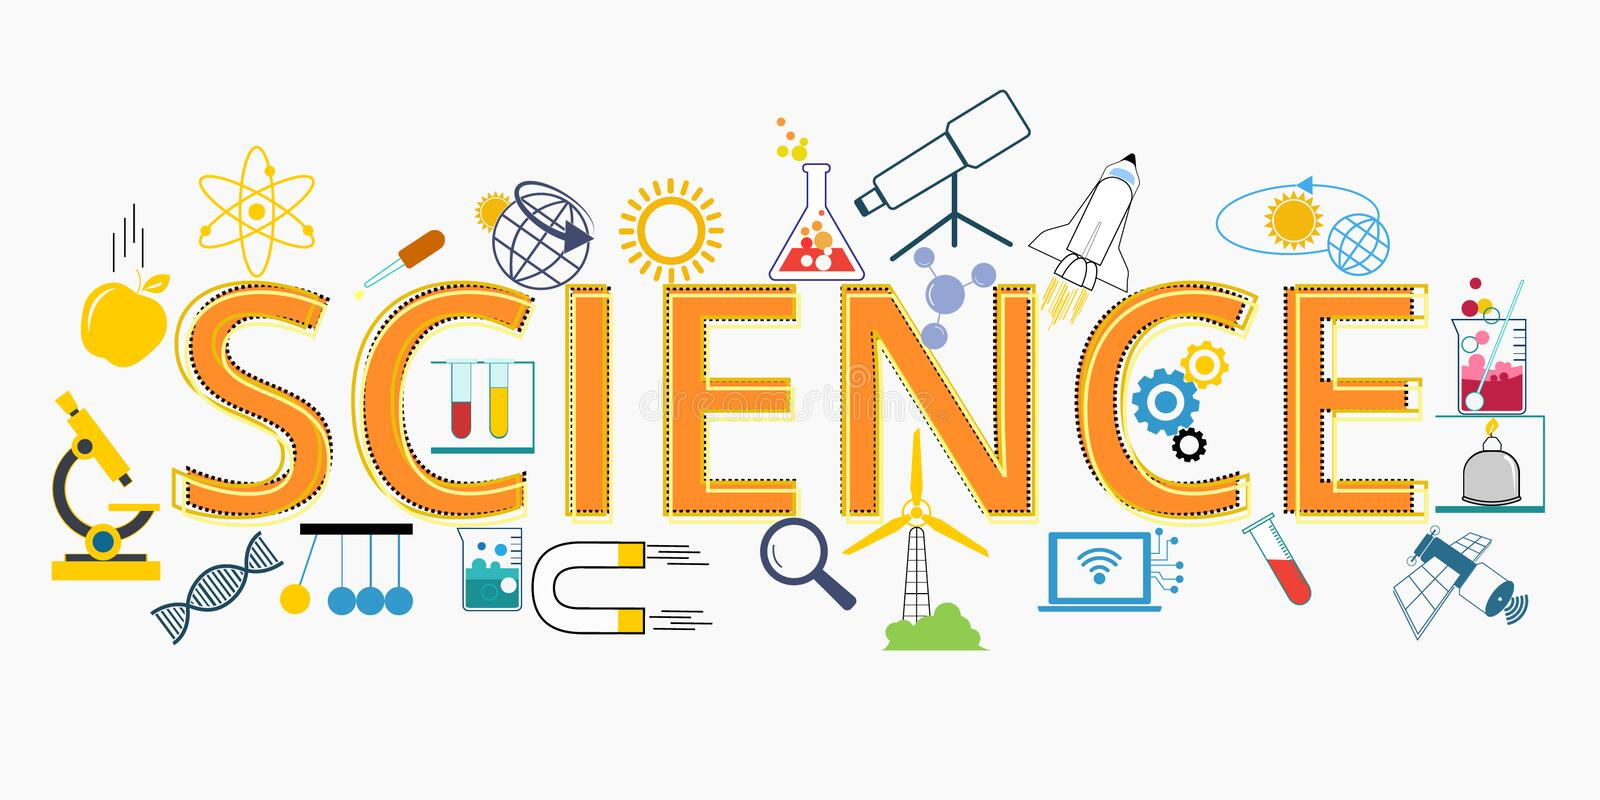 Science Education And Text Science Stock Vector - Illustration of graphic,  flat: 181031138